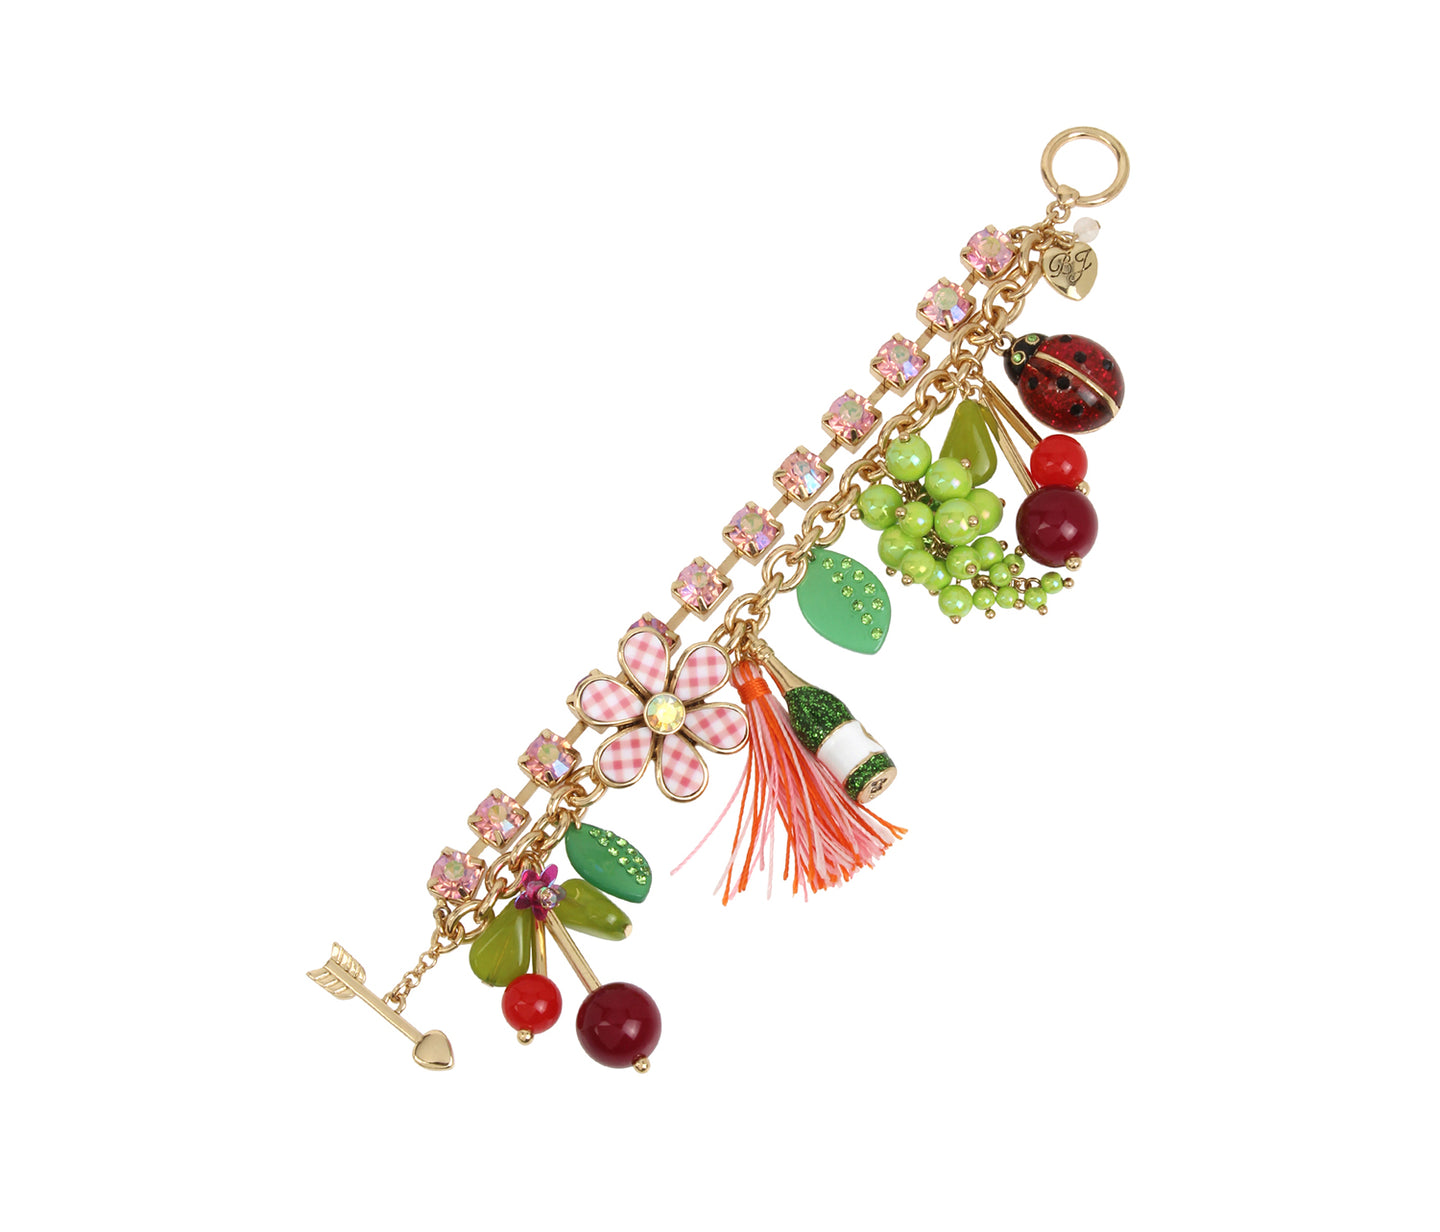 SUMMER PICNIC CHARM BRACELET MULTI - JEWELRY - Betsey Johnson